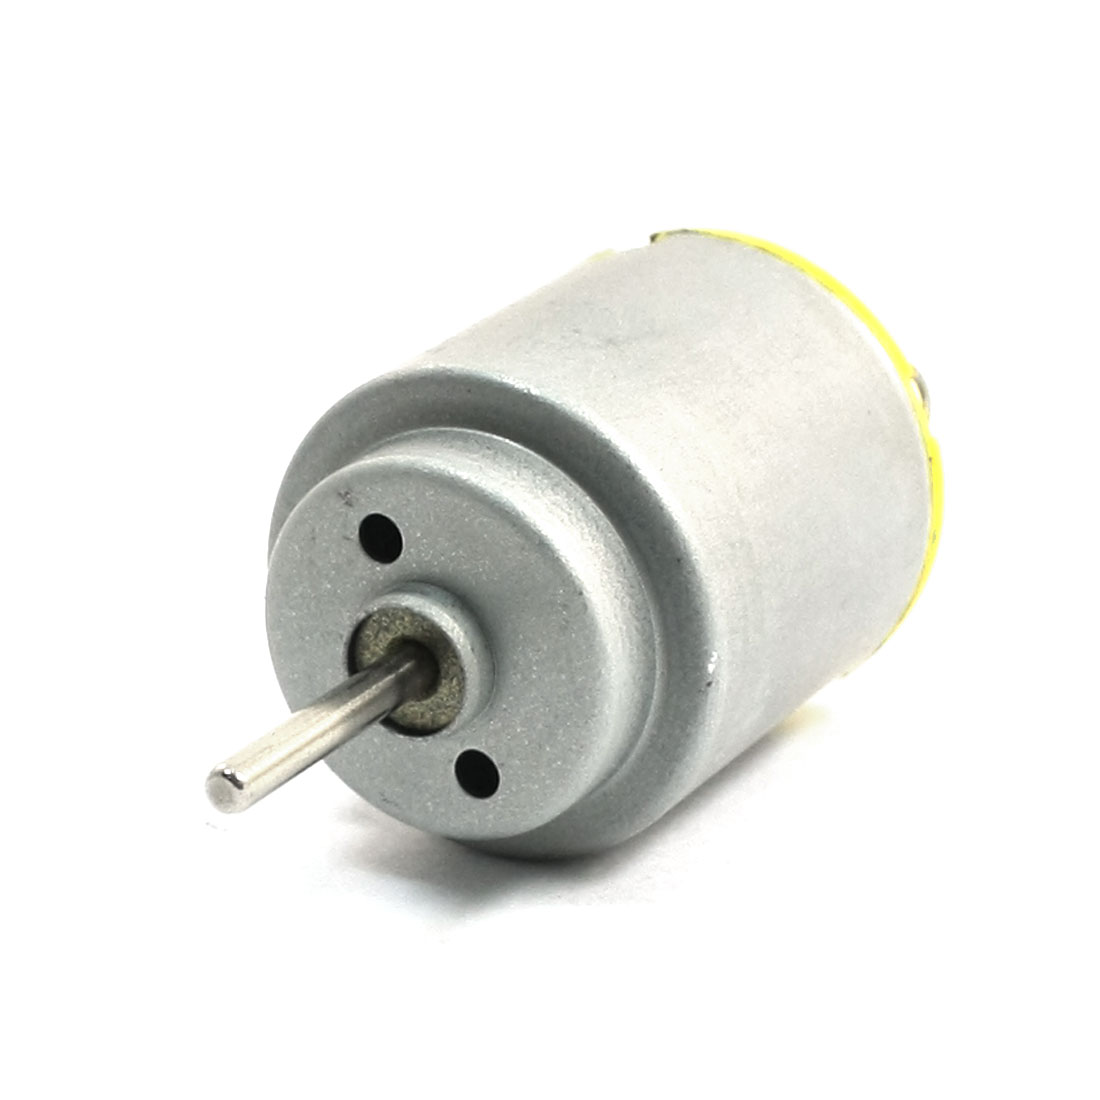 DC 6V 11000RPM High Torque Electric Speed Reduce Motor for Toy Car